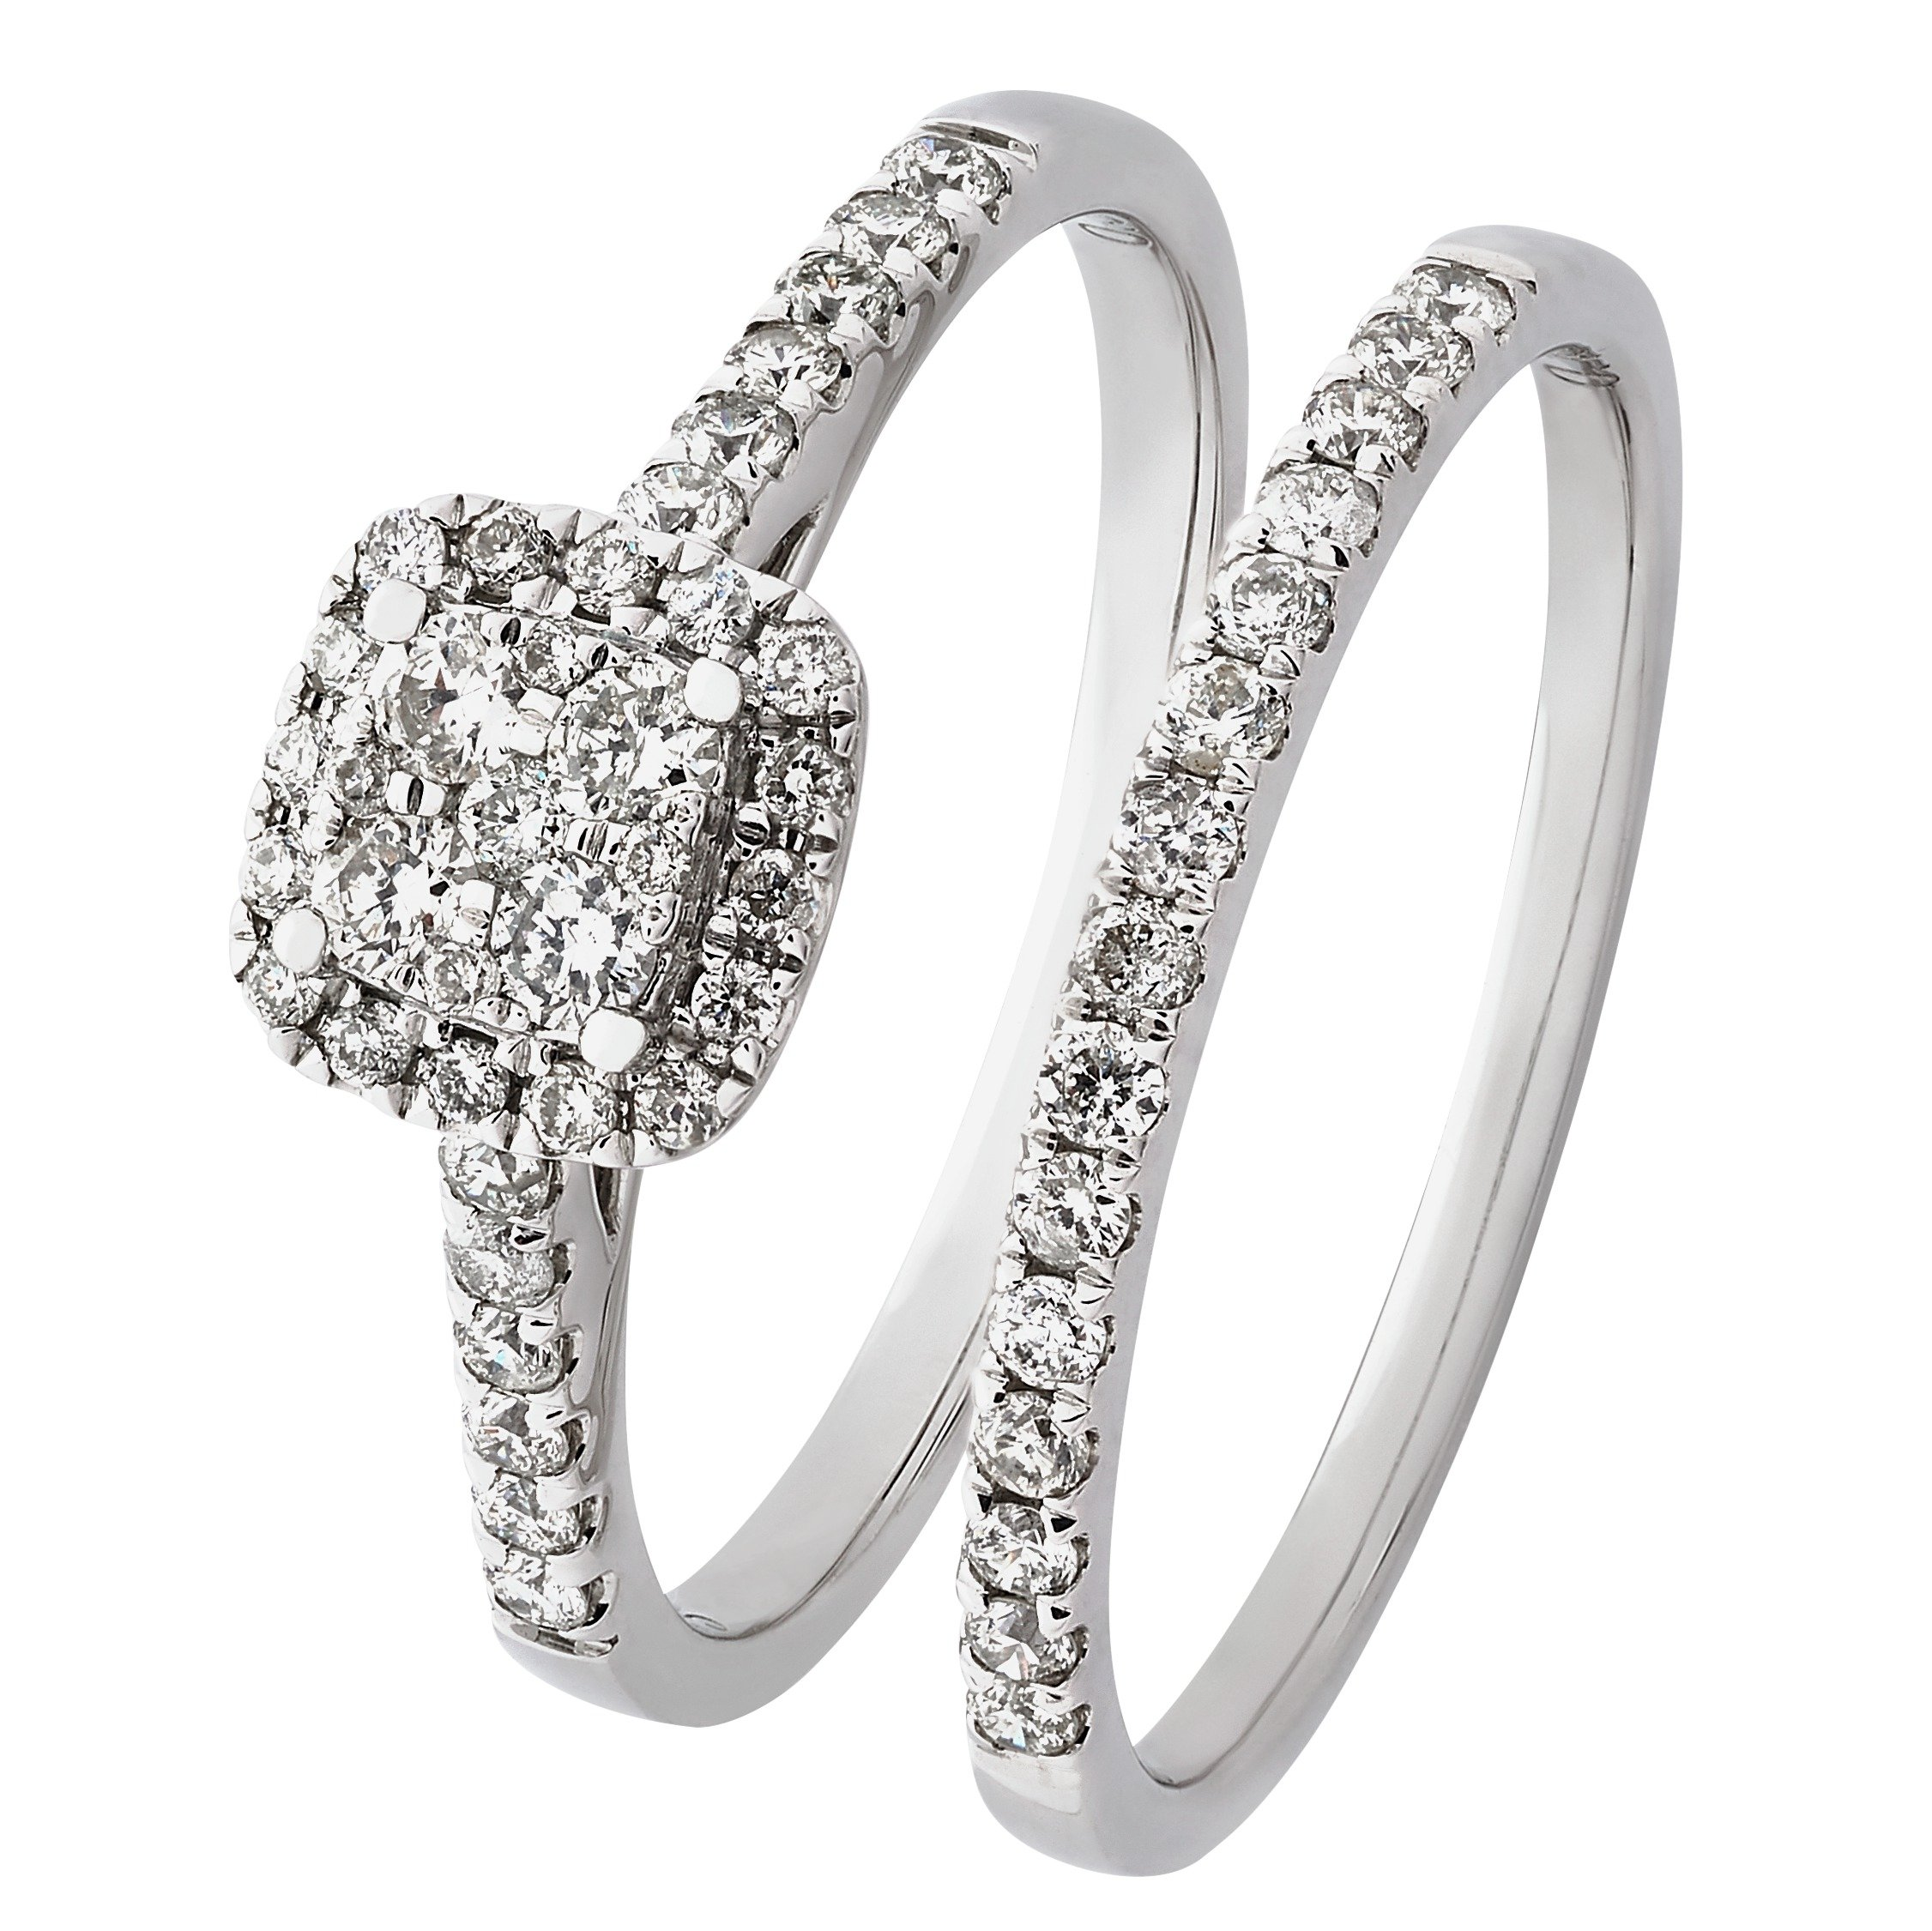 Revere Revere 9ct White Gold 0.50ct tw Diamond Bridal Ring Set